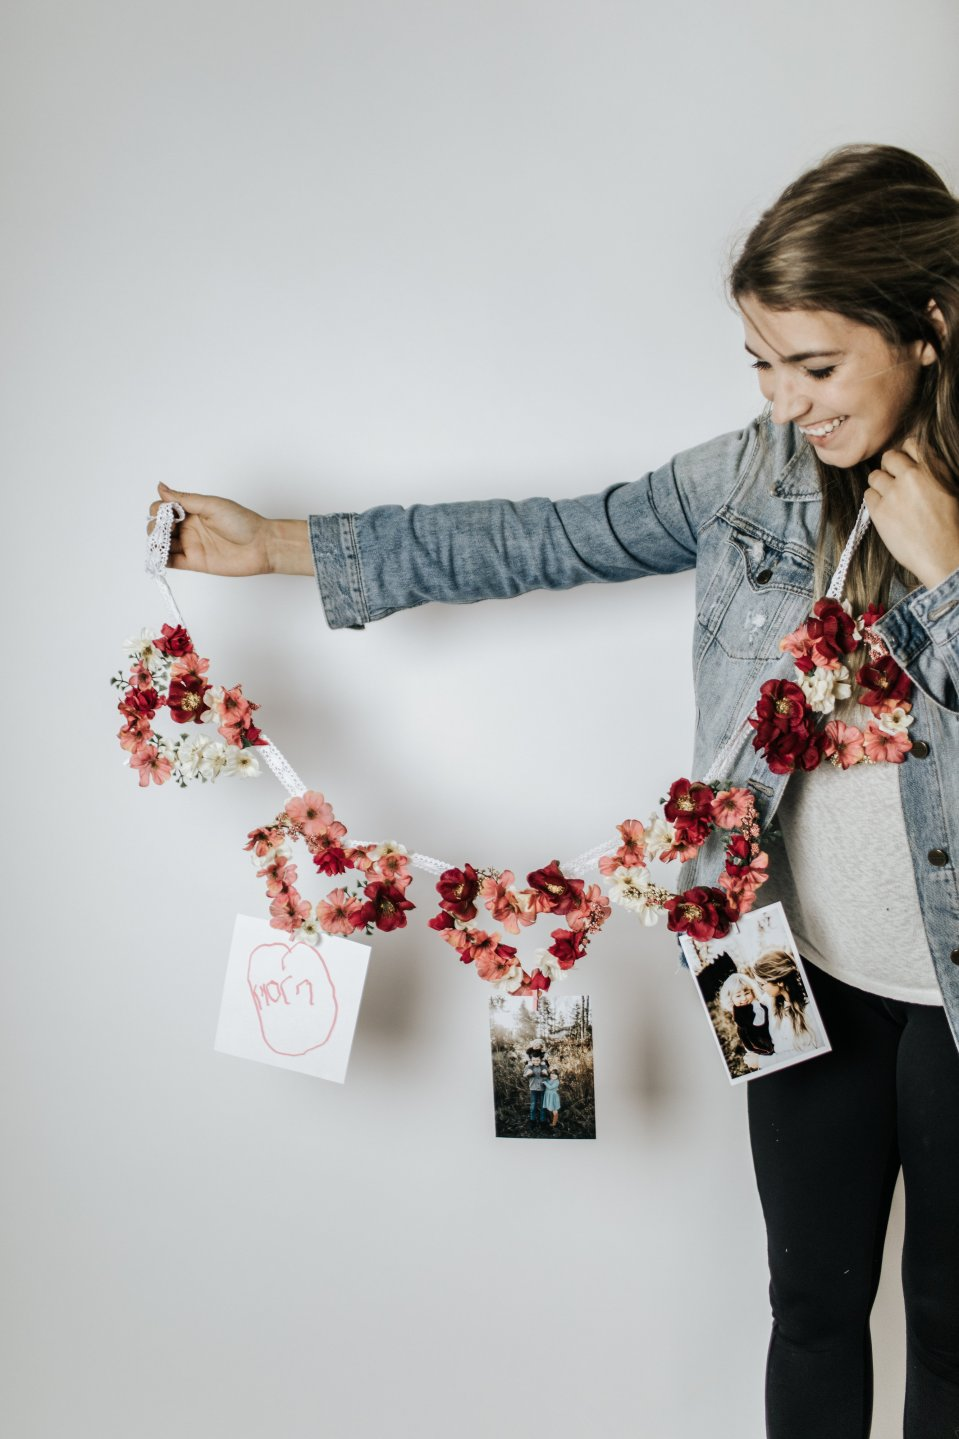 How to Make a Floral Heart Garland